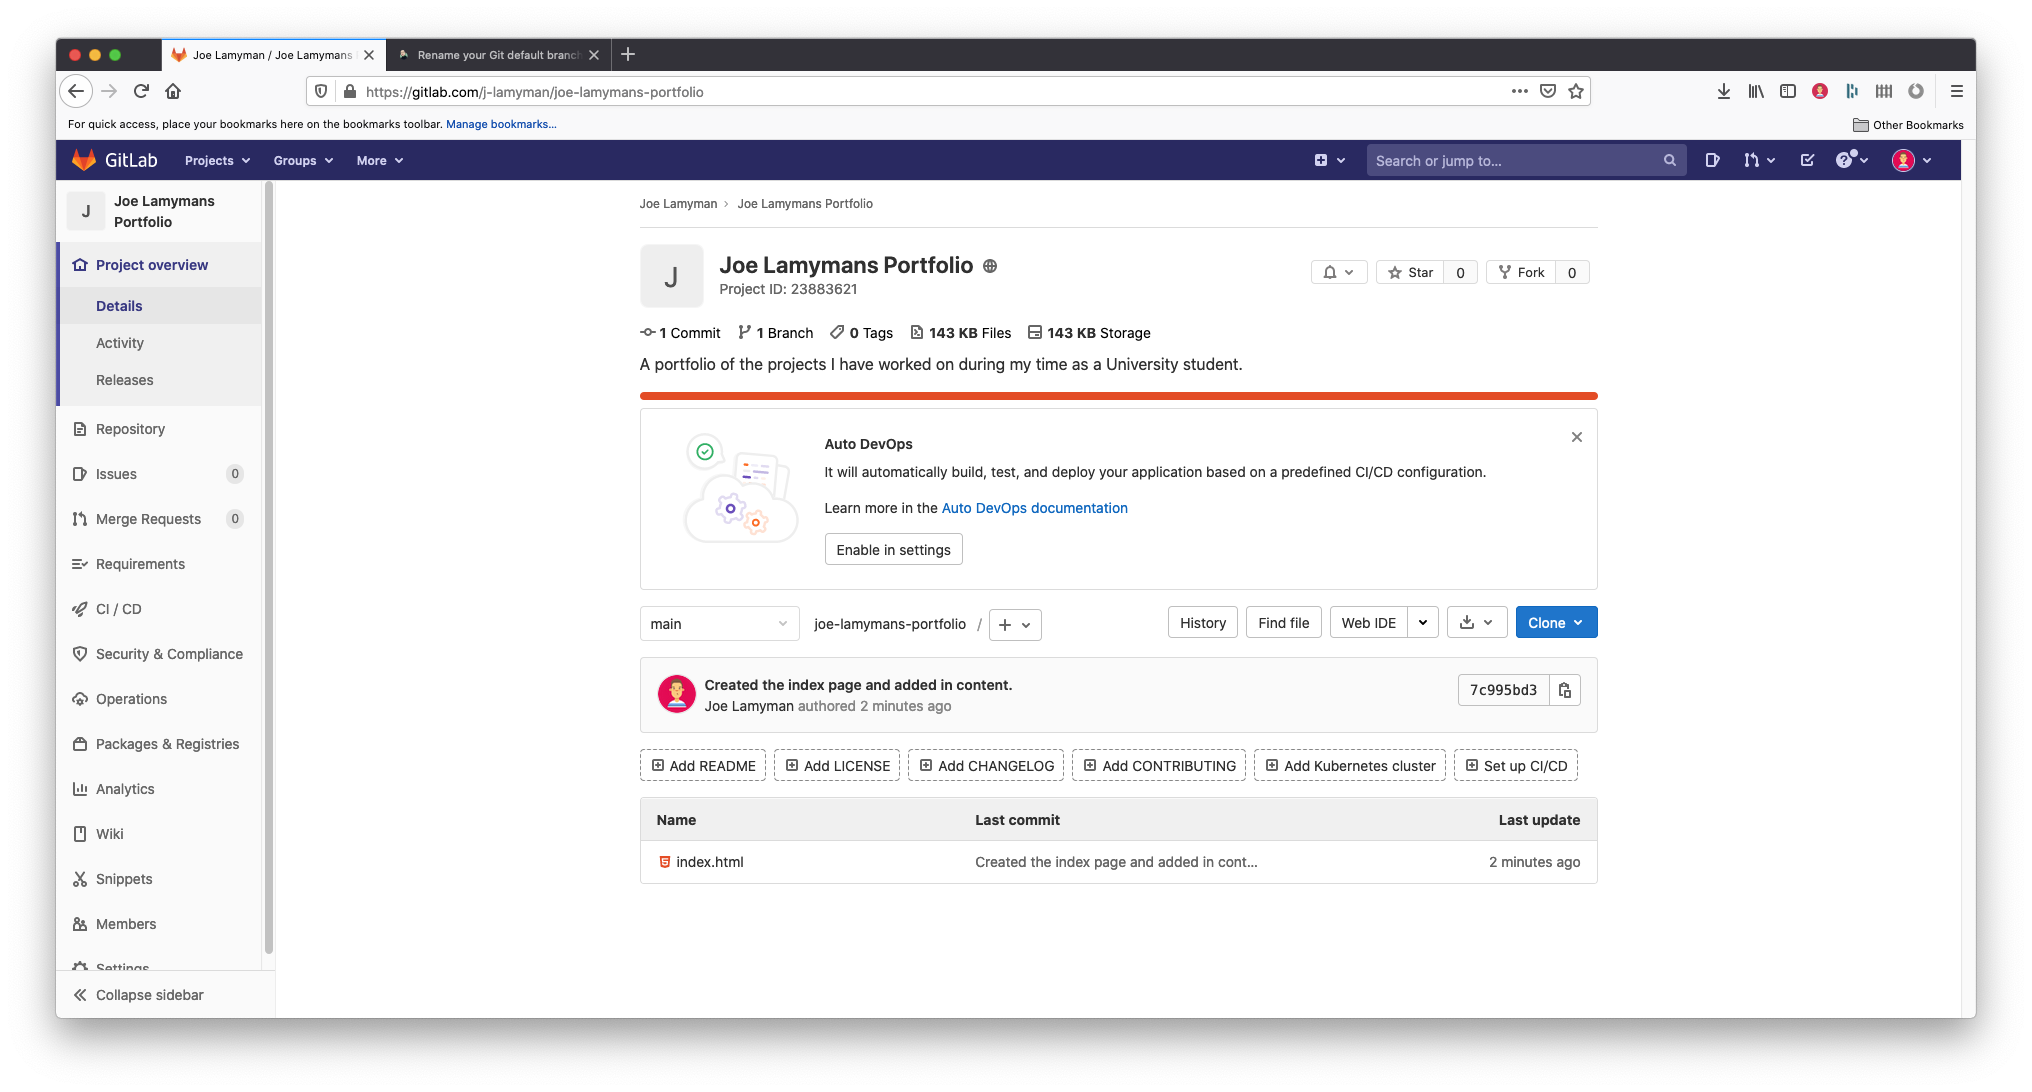 A screenshot of the Gitlab's 'Project overview' screen. The screen is titled: 'Joe Lamyman's Portfolio'. On screen is relevant information explaining how many commits there have been (1), the number of branches (1) and the size of files (143KB). More pertinent for this post, a message is visible that mirrors the commit message I provided, 'Created the index page and added in content'. Below this, listed are a series of buttons for the user to add files, such as a README, a license, or to set up CI/CD. Finally, files in the repository are listed. Here the https://d33wubrfki0l68.cloudfront.net/11e3515d1ec74c41f82b3ff0bbb61bbdaeea941b/6b1c4/index.html file I created previously is listed.